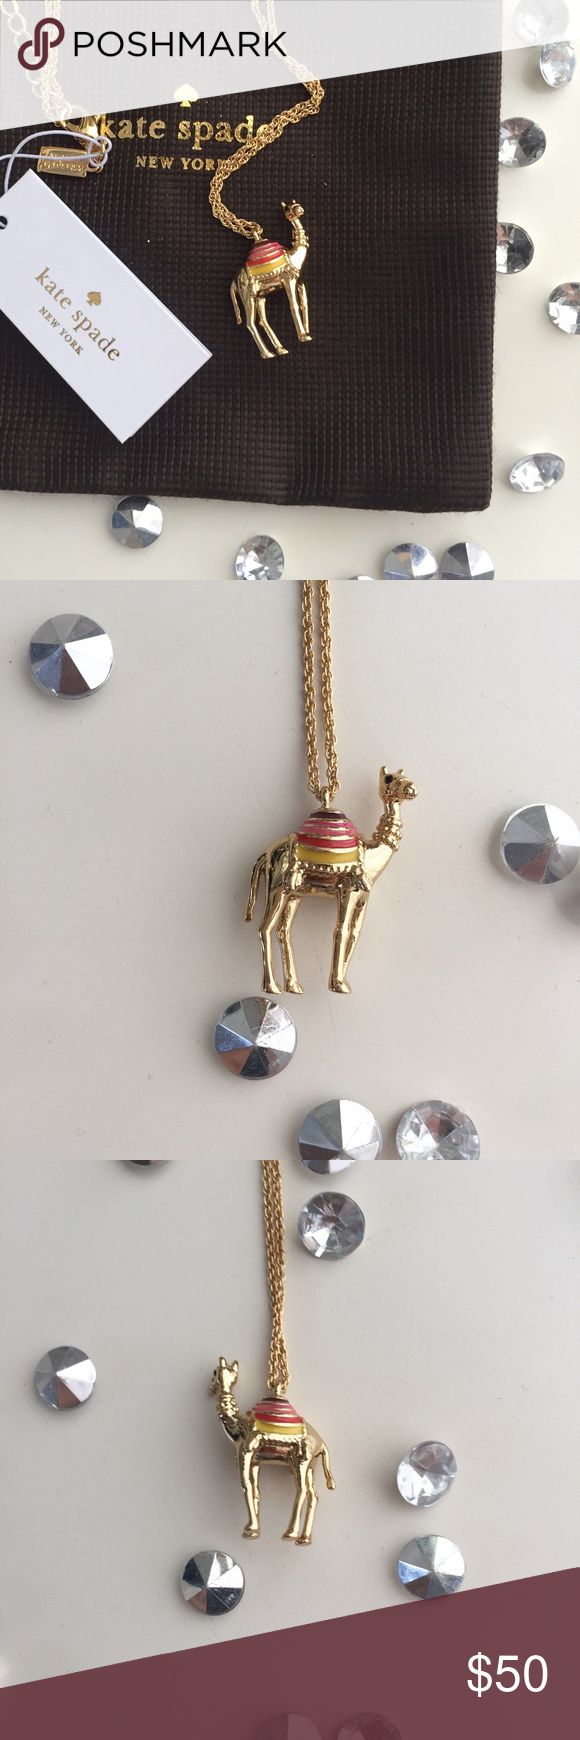 """🐪Kate Spade Camel Necklace🐪 So cute! From the Spice Things Up line, this is the camel necklace. Small enough for wear any time of day, it's an adorable piece to pair with an outfit! 18"""" chain with option 3"""" adjustable additional drop. Brand new with dust bag! kate spade Jewelry Necklaces"""